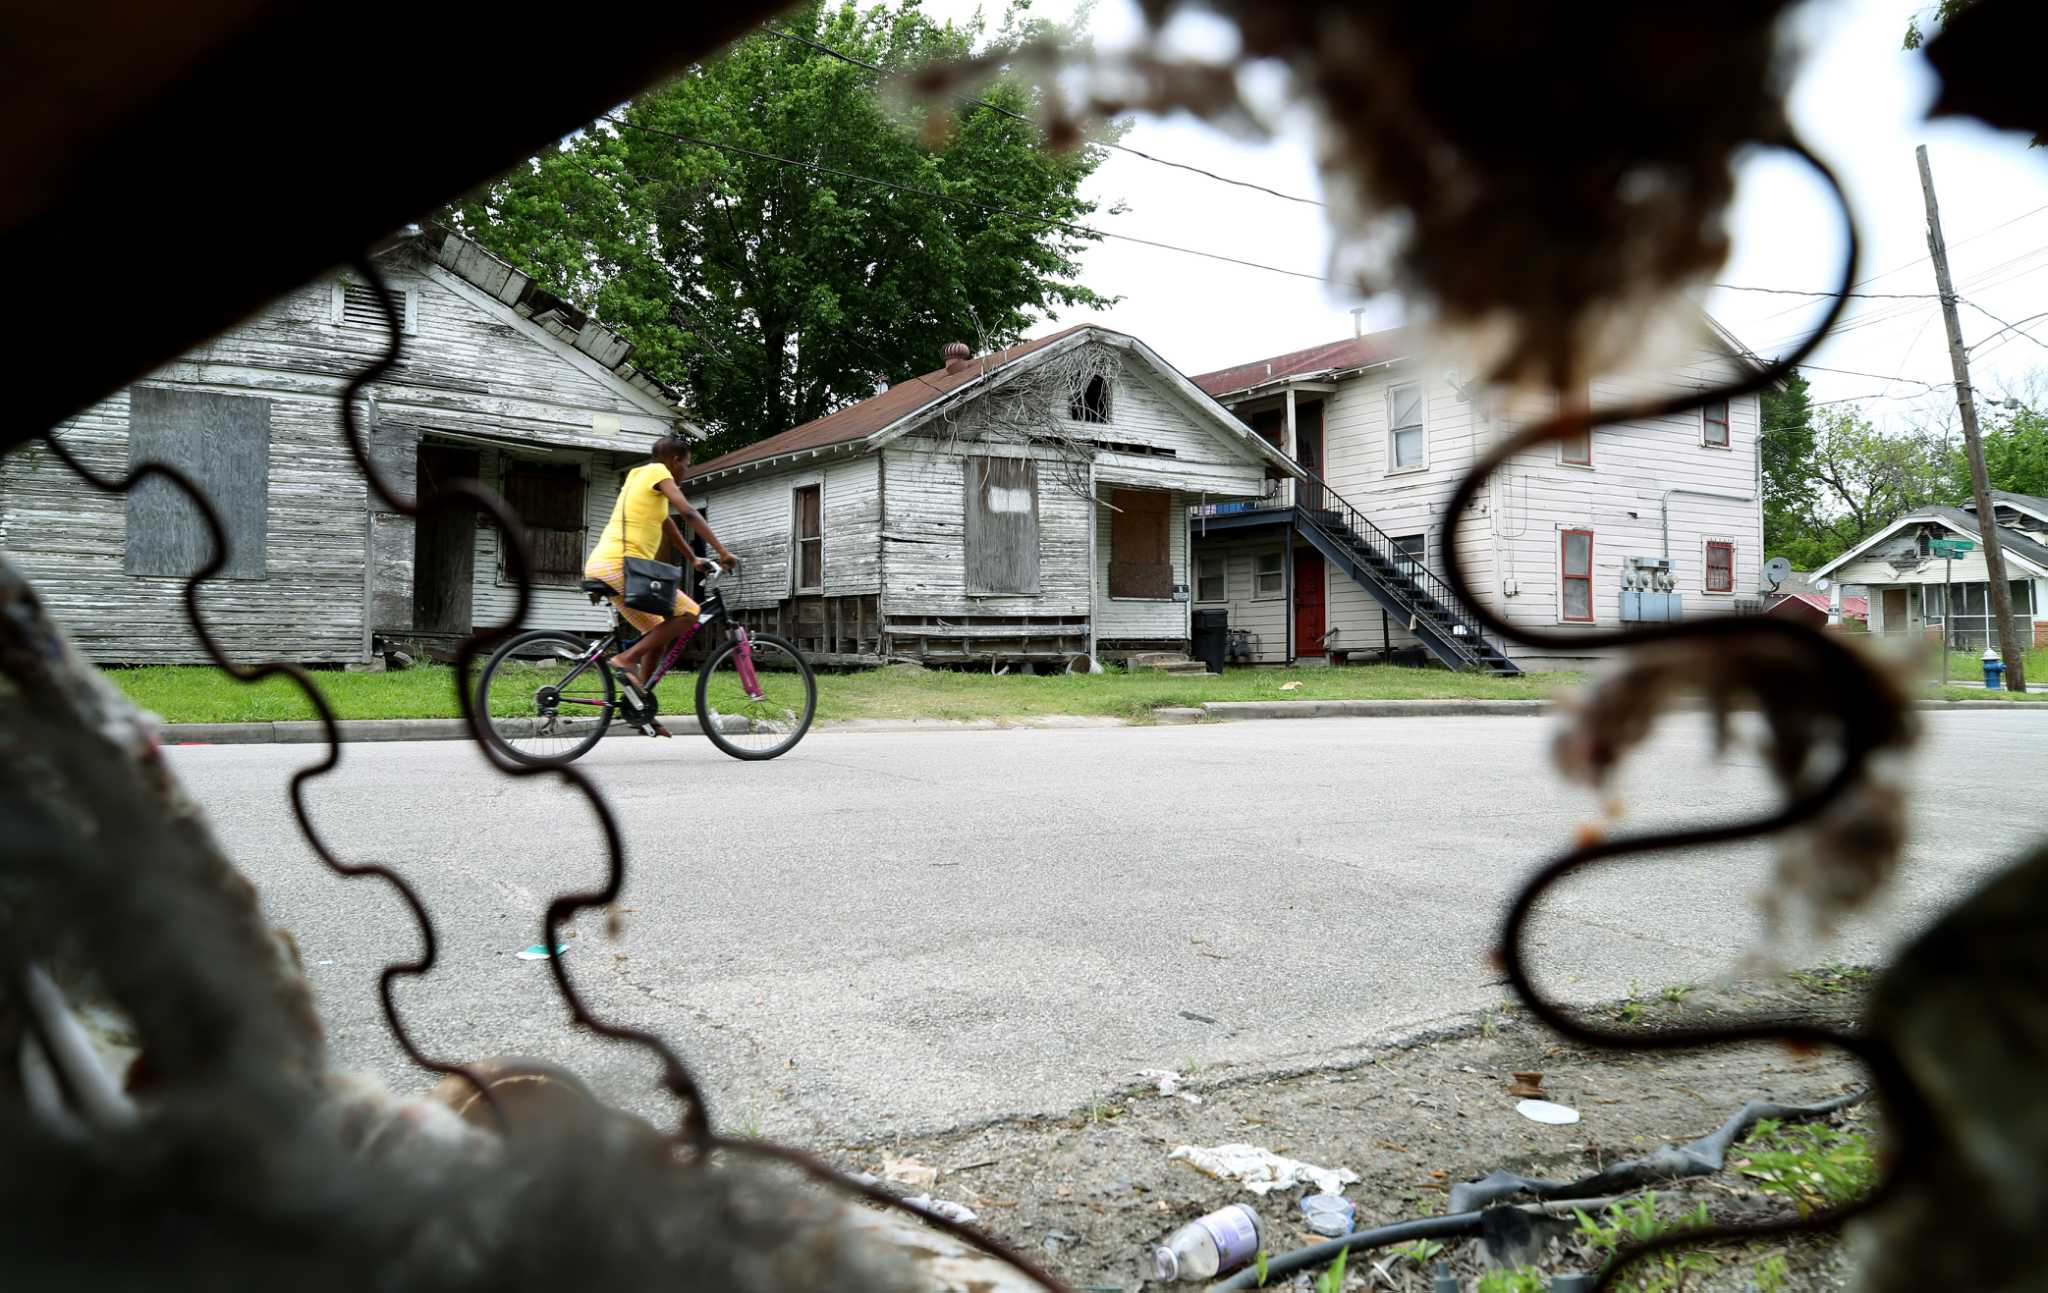 city seeks to thaw housing voucher freeze with $3.4m in rental